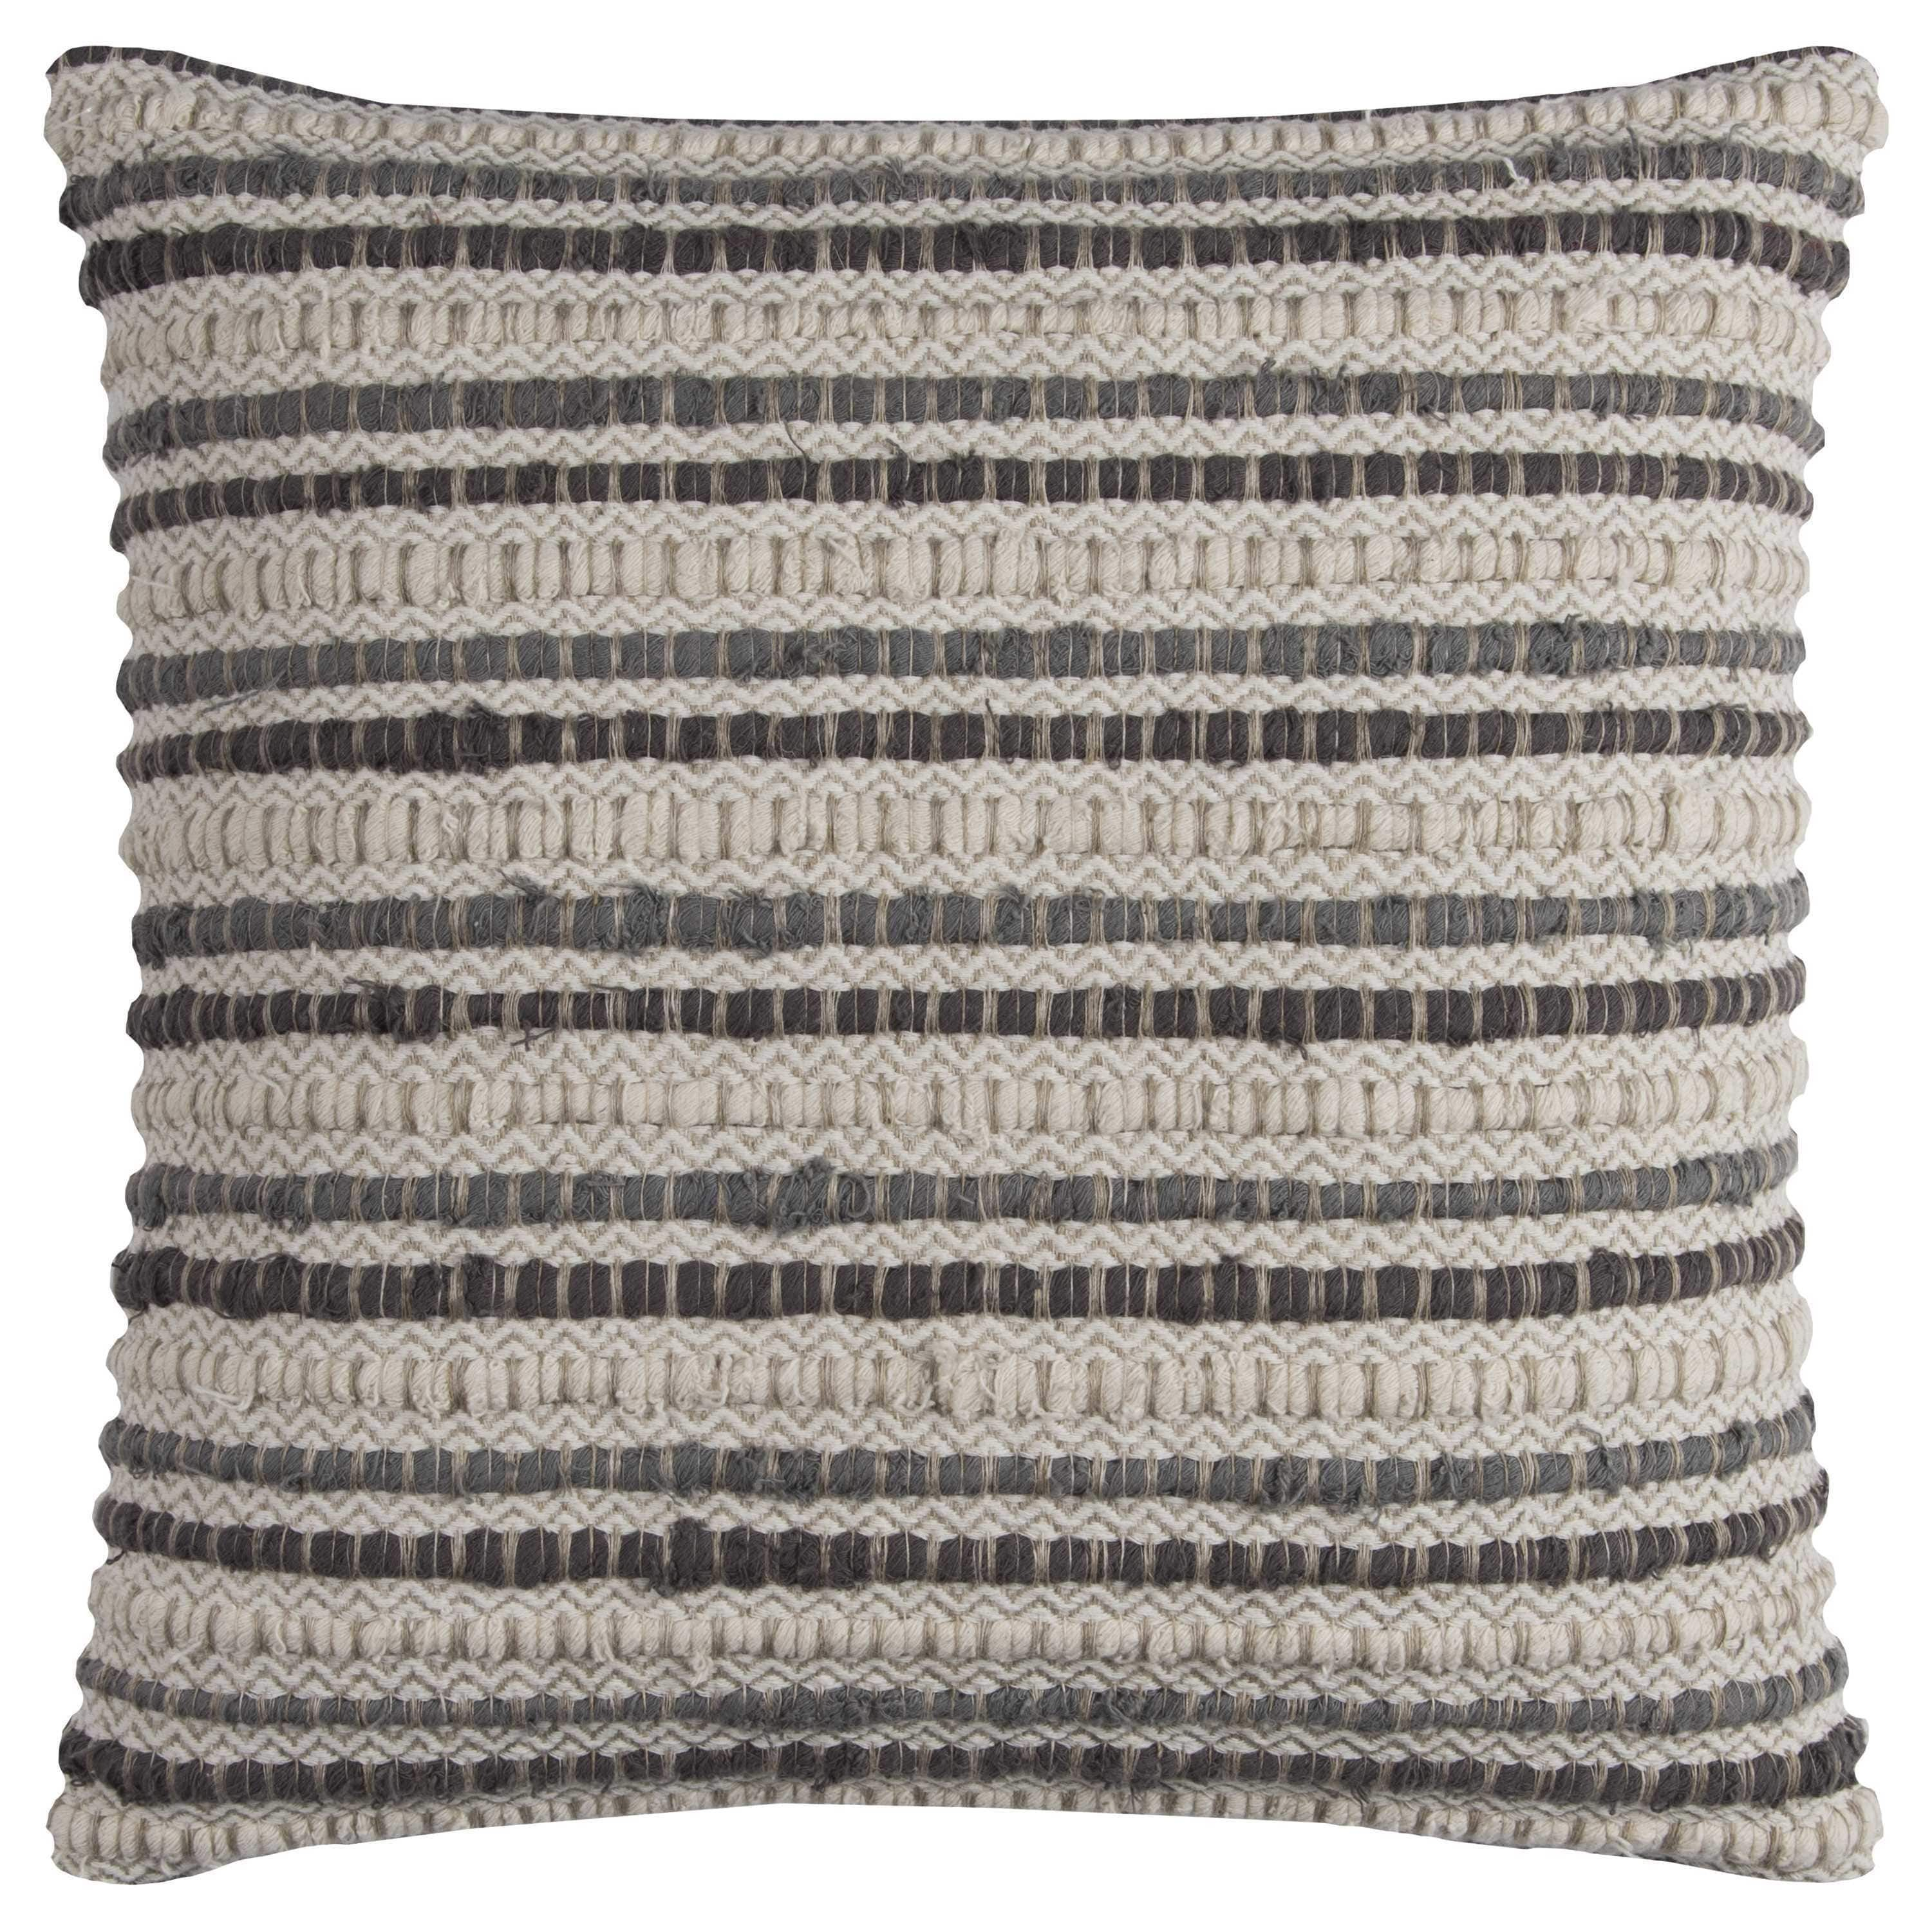 Rizzy home stripe textured linencotton inch throw pillow